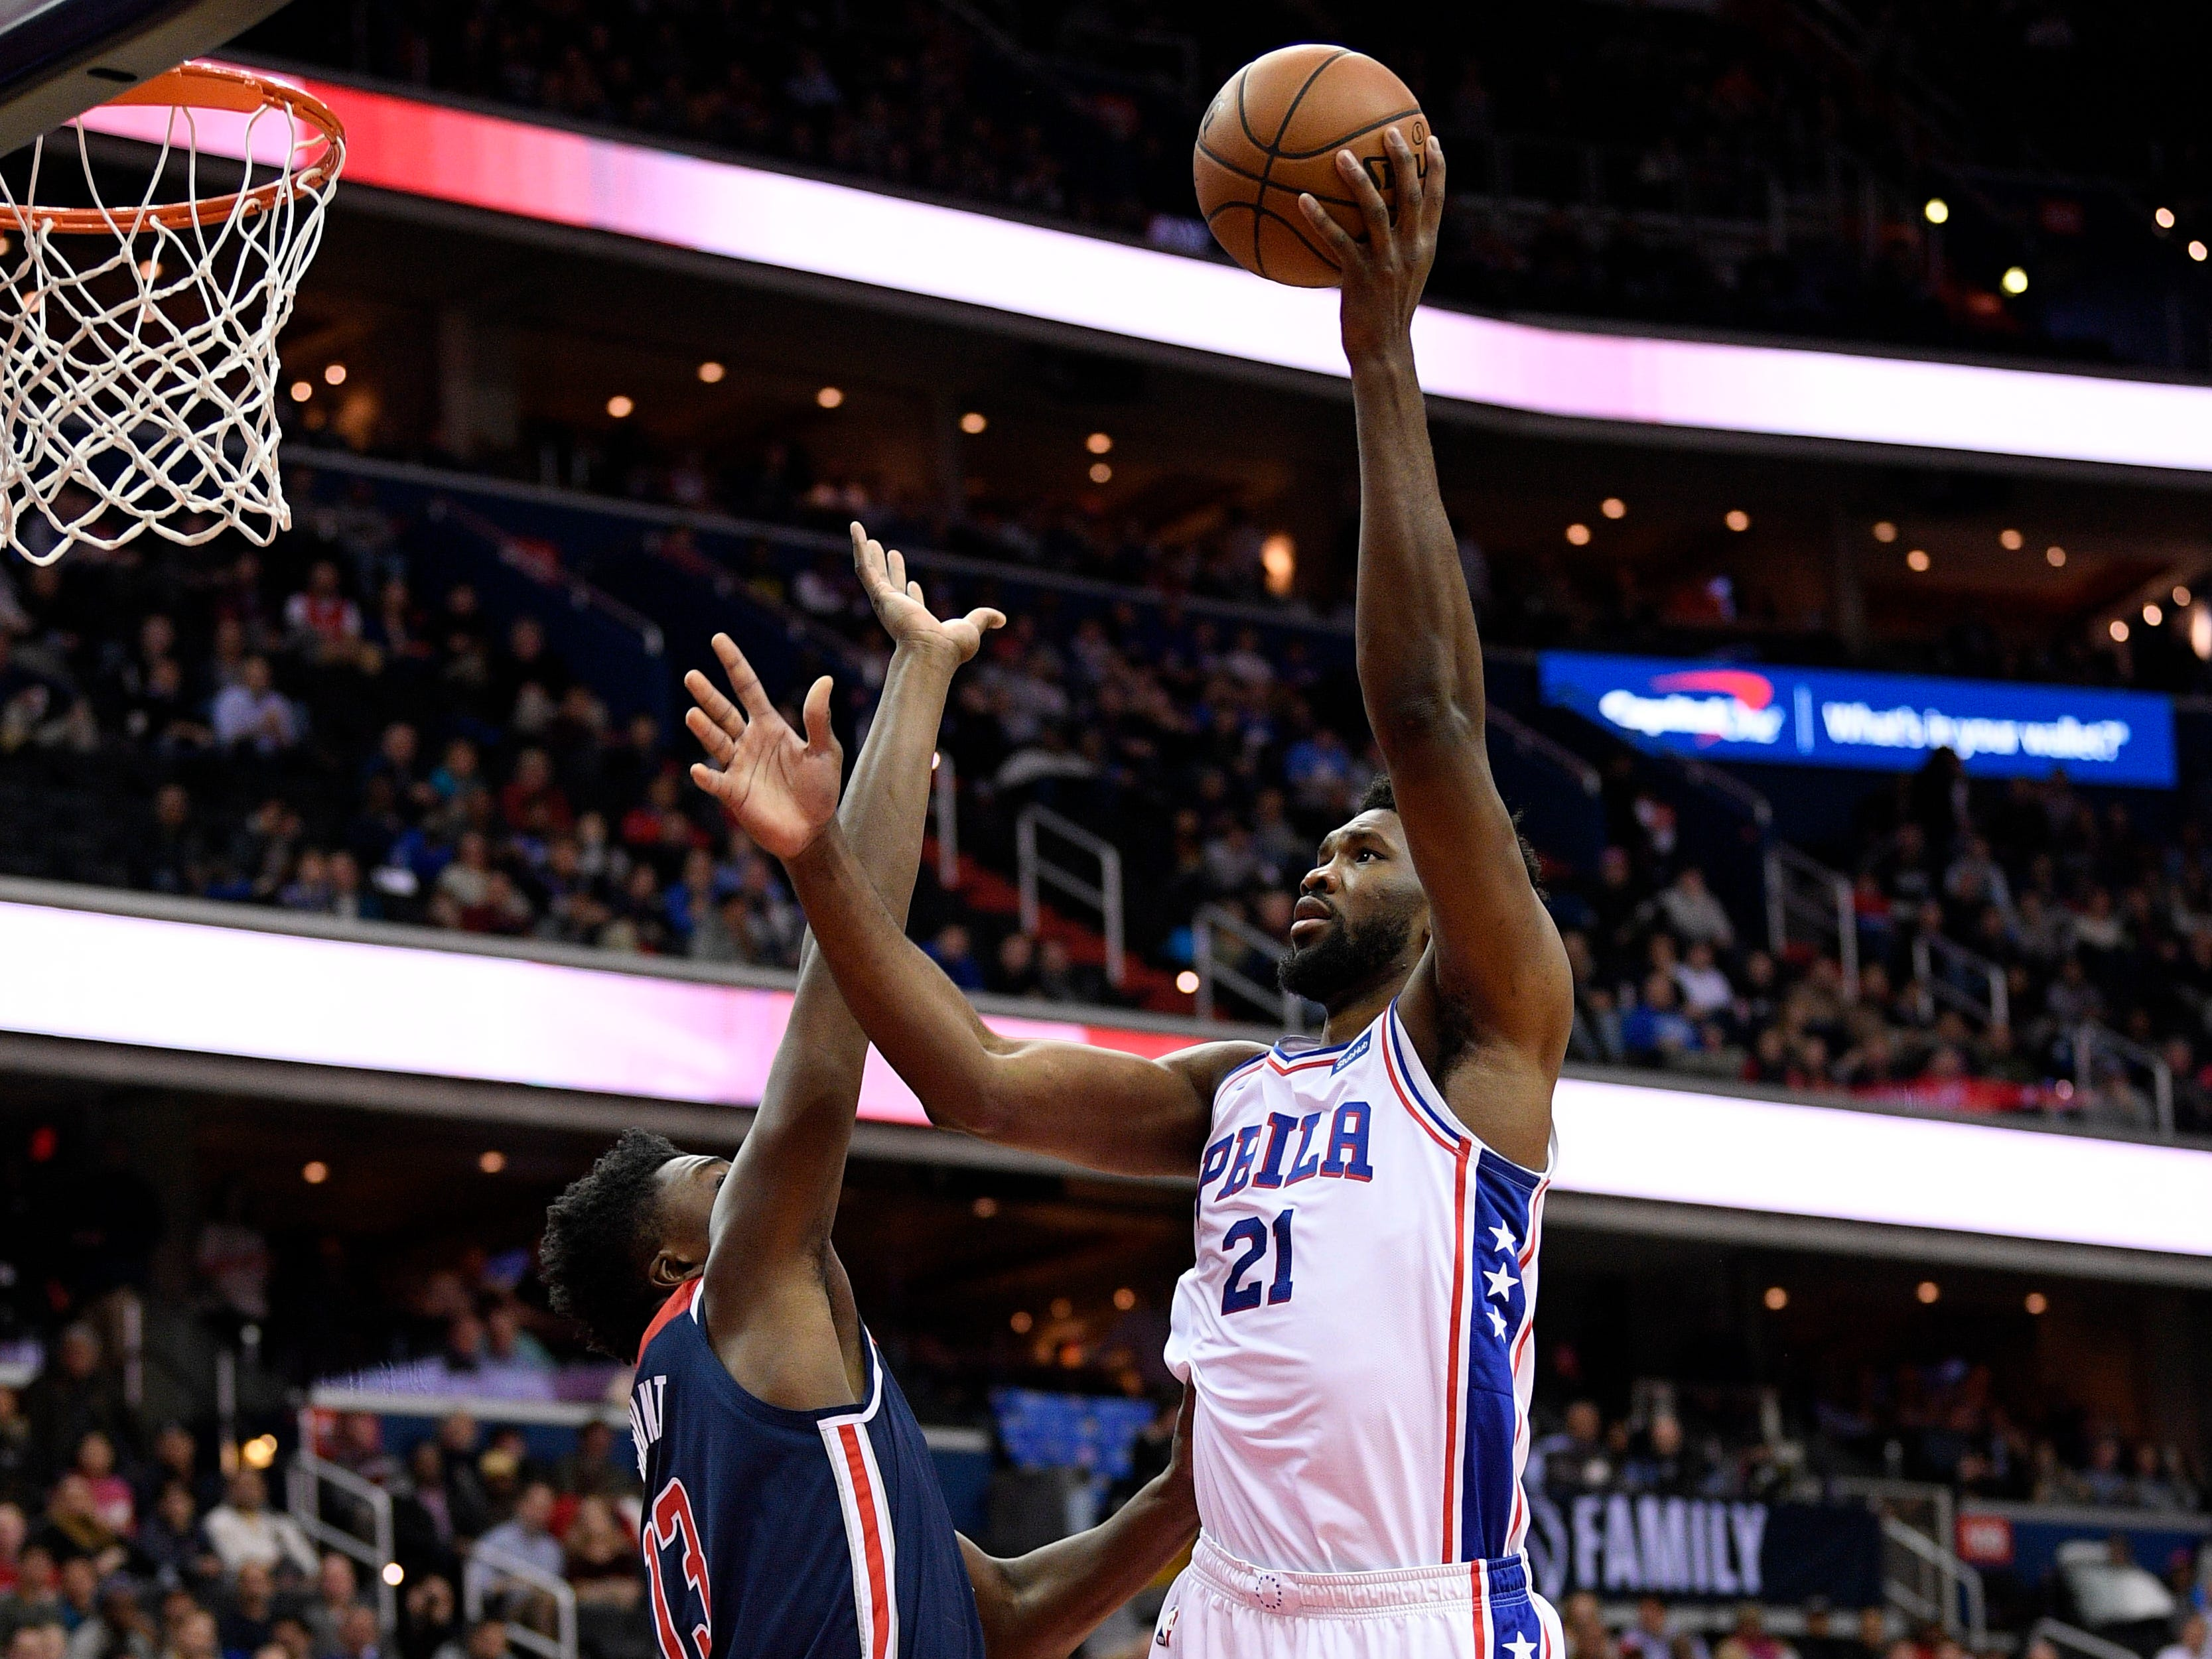 Philadelphia 76ers center Joel Embiid (21) goes to the basket against Washington Wizards center Thomas Bryant (13) during the first half of an NBA basketball game, Wednesday, Jan. 9, 2019, in Washington. (AP Photo/Nick Wass)